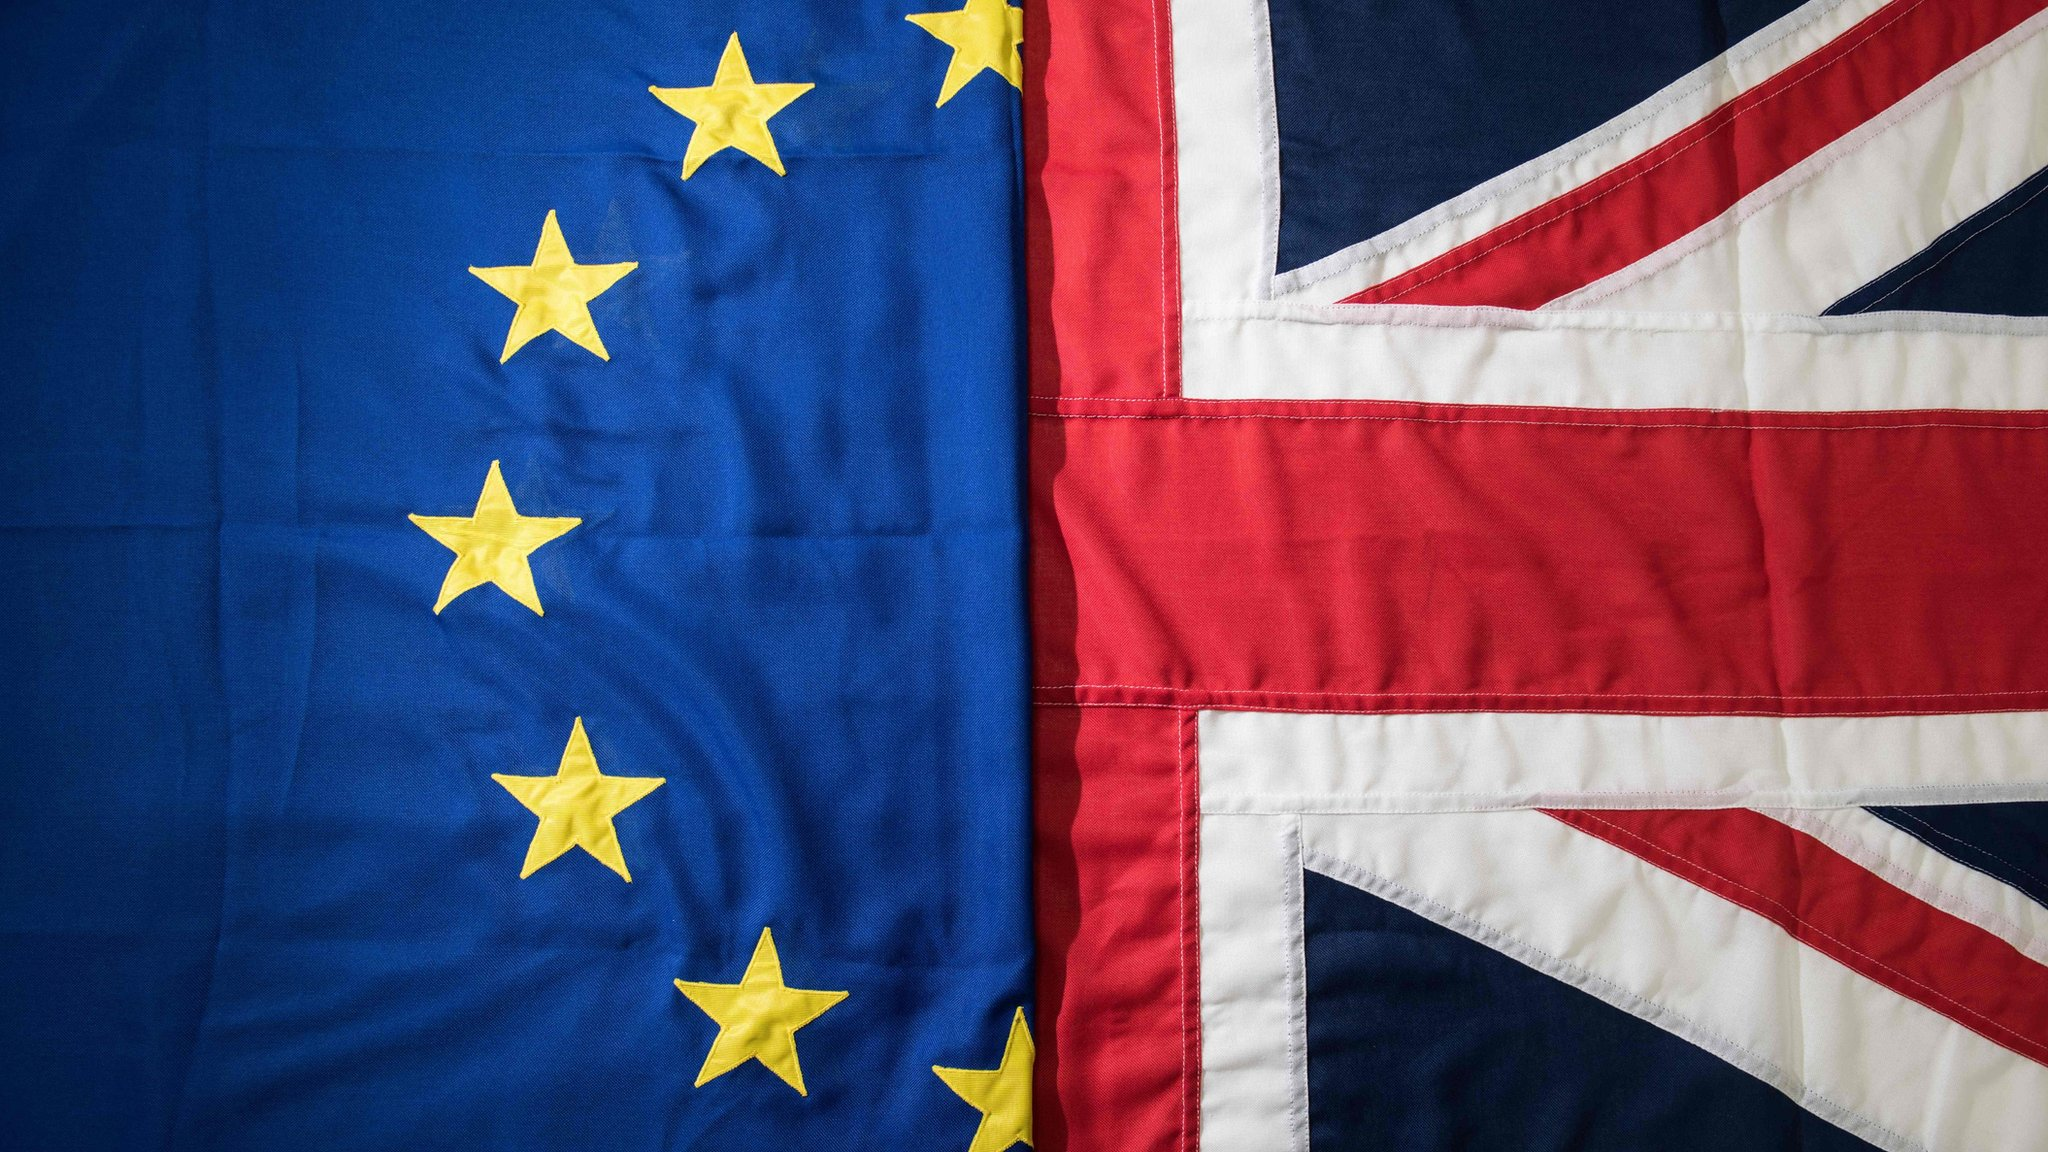 Brexit: EU approves withdrawal agreement - CBBC Newsround